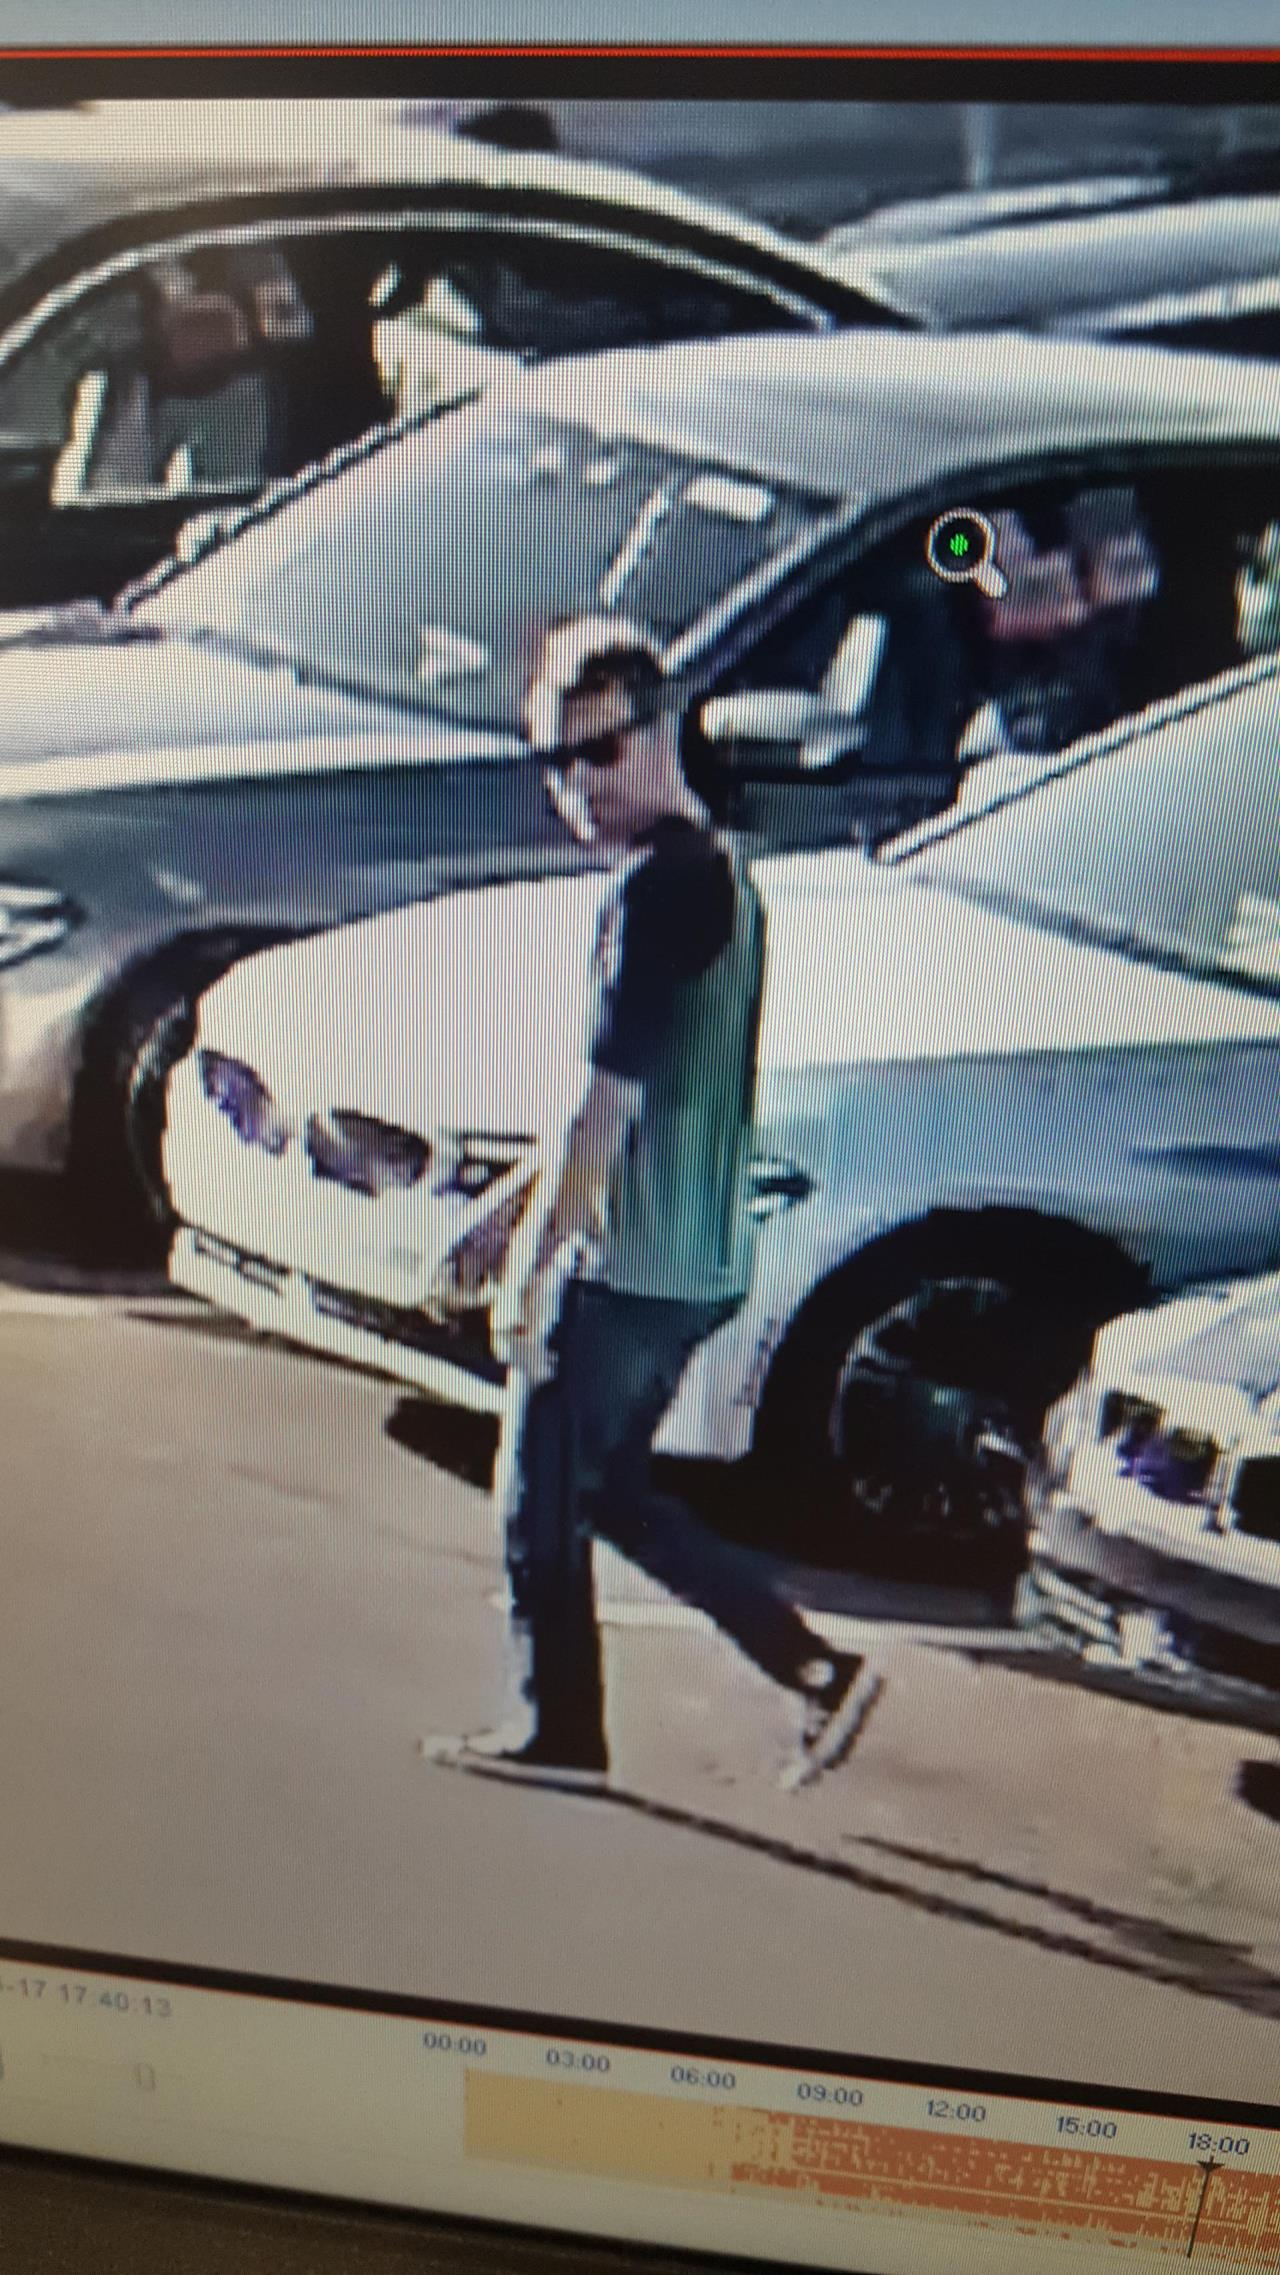 suspect walking by cars wearing sunglasses